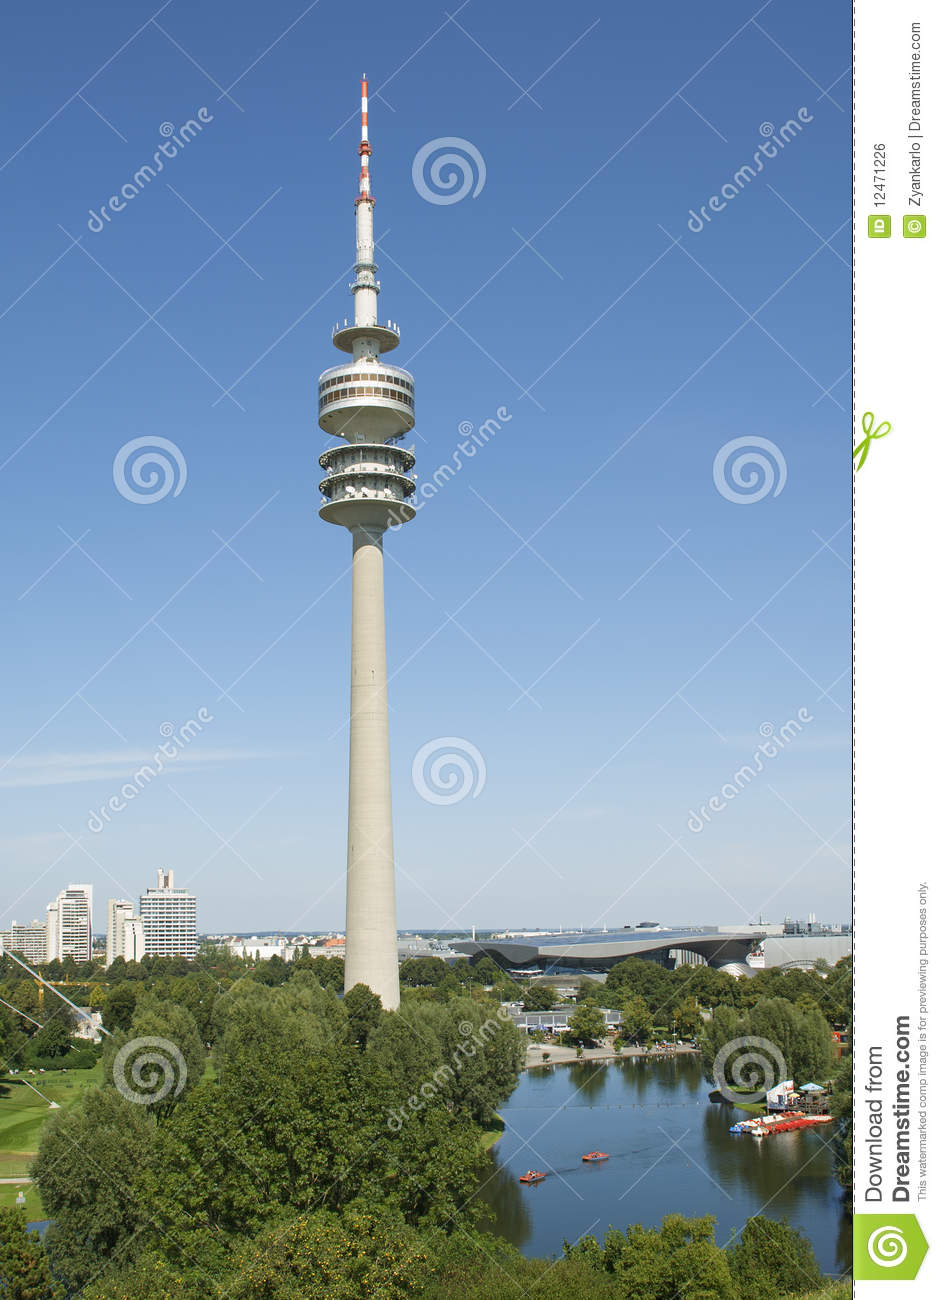 The Olympic Tower Of Munich In Germany Royalty Free Stock Image.